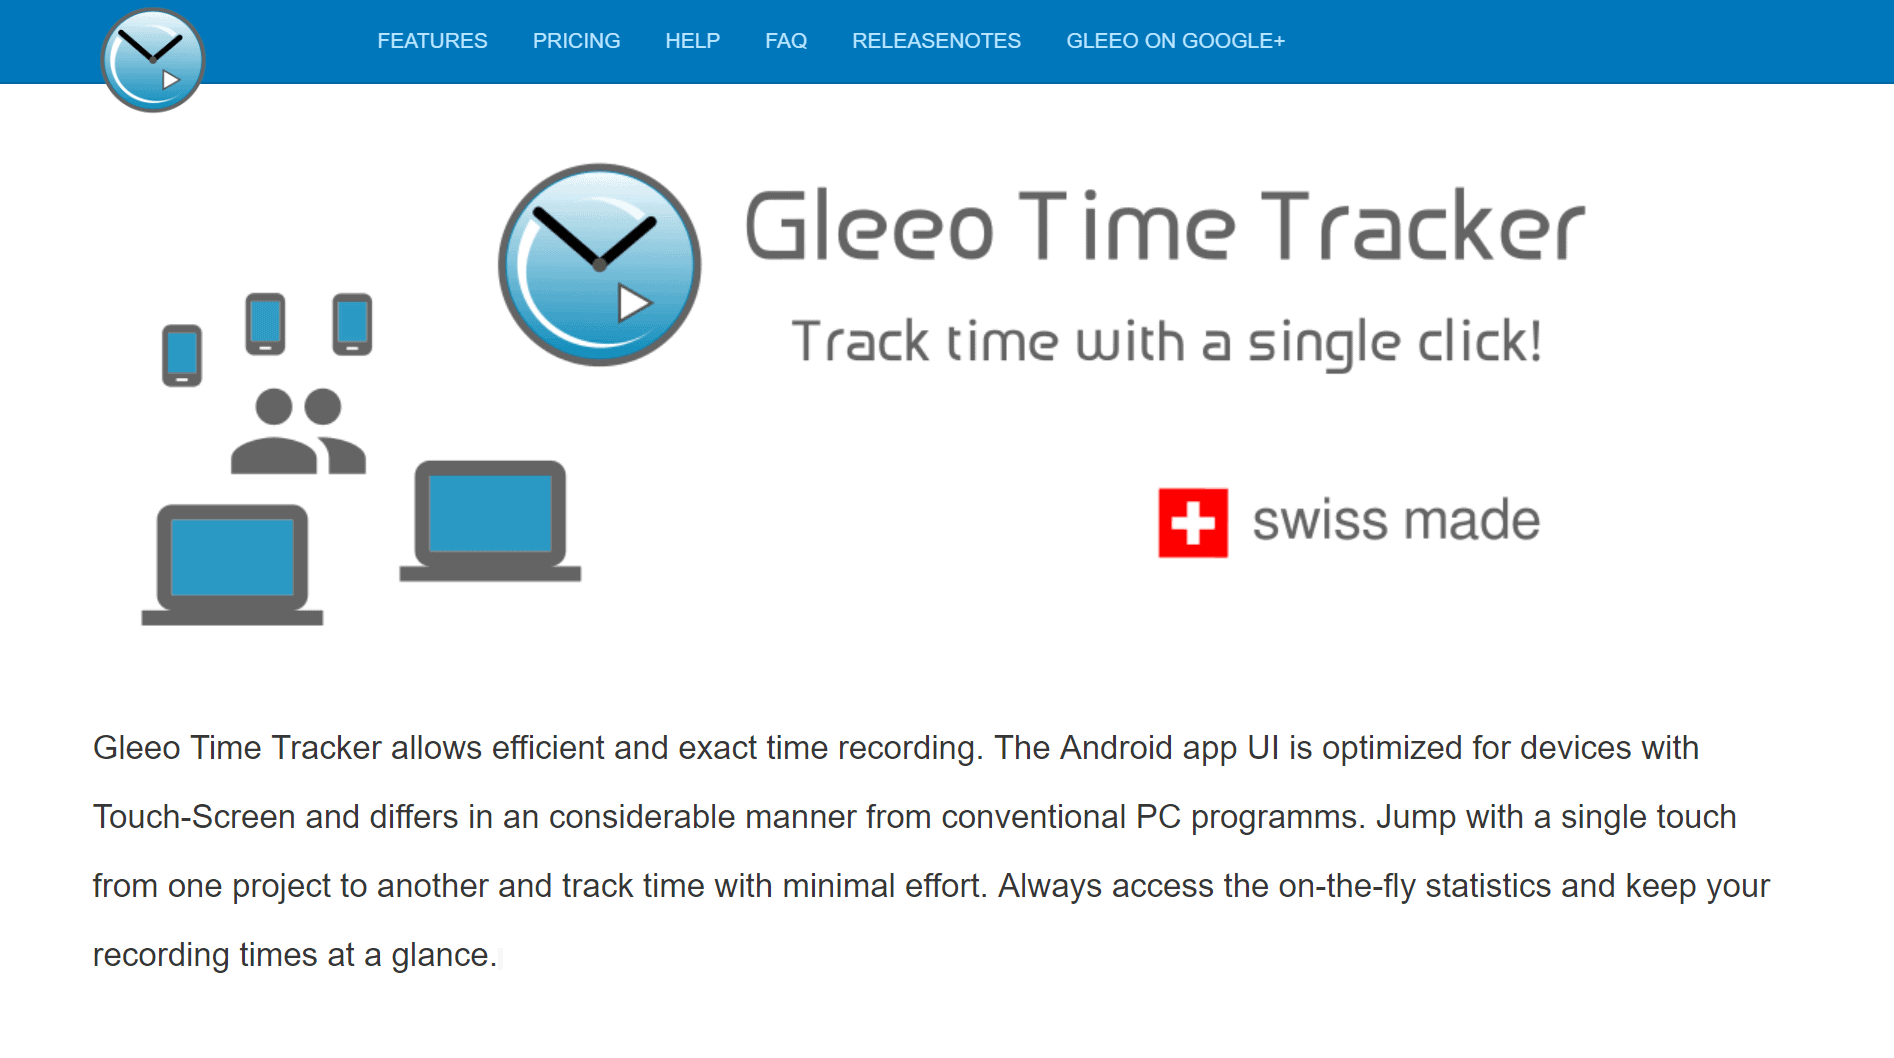 gleeo app with location monitoring services